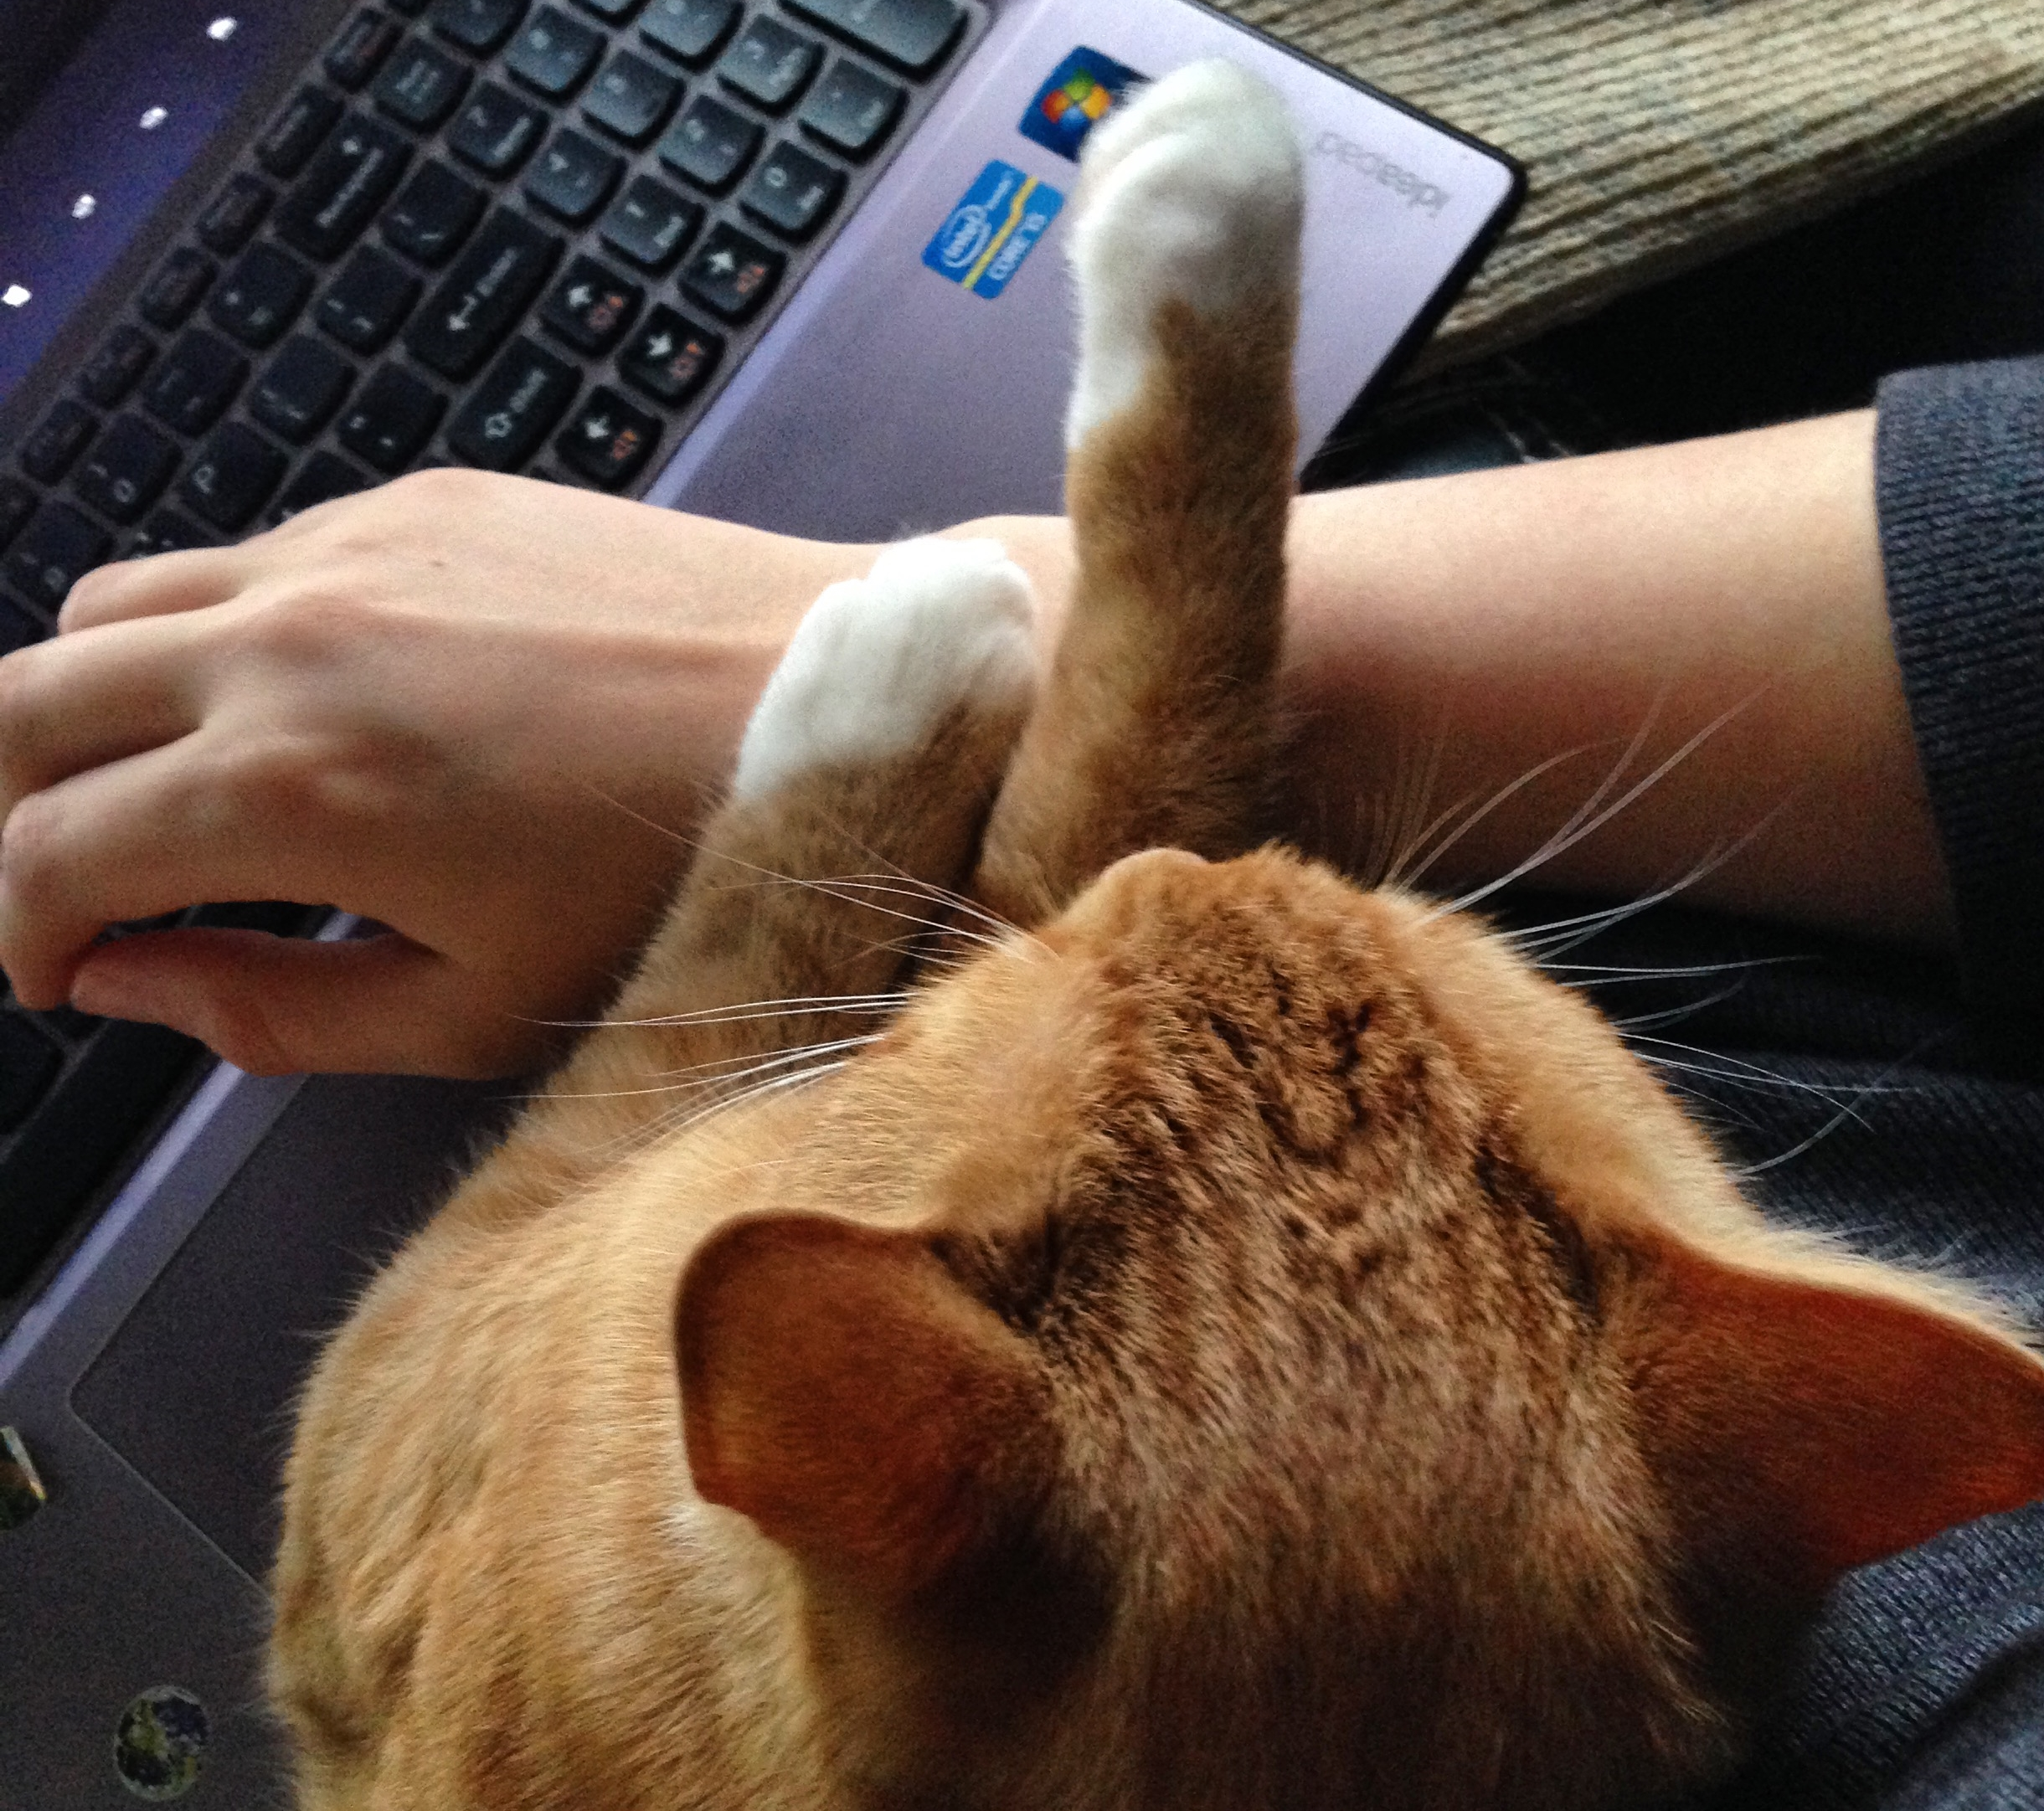 I swear it helps me work when he sits on my lap like this! Particularly when he starts writing poetry. A poem by Wilfred goes something like this: kja;hoijsf; hisofak;lsdjf oh aifihoj ji;lf;l;ajlkf jkl;